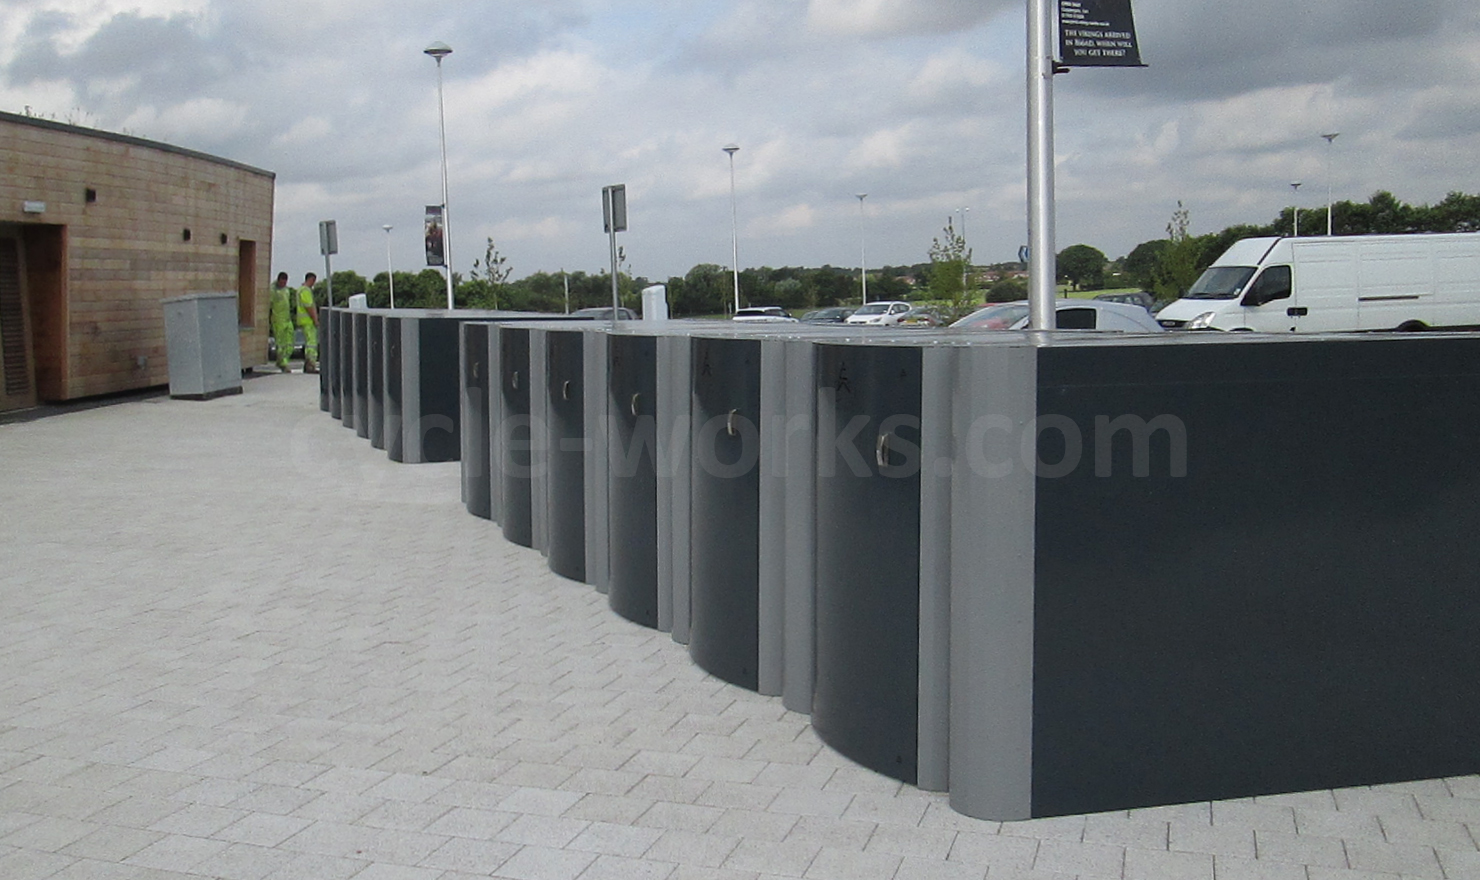 York Askham Bar Park and Ride Cycle Lockers